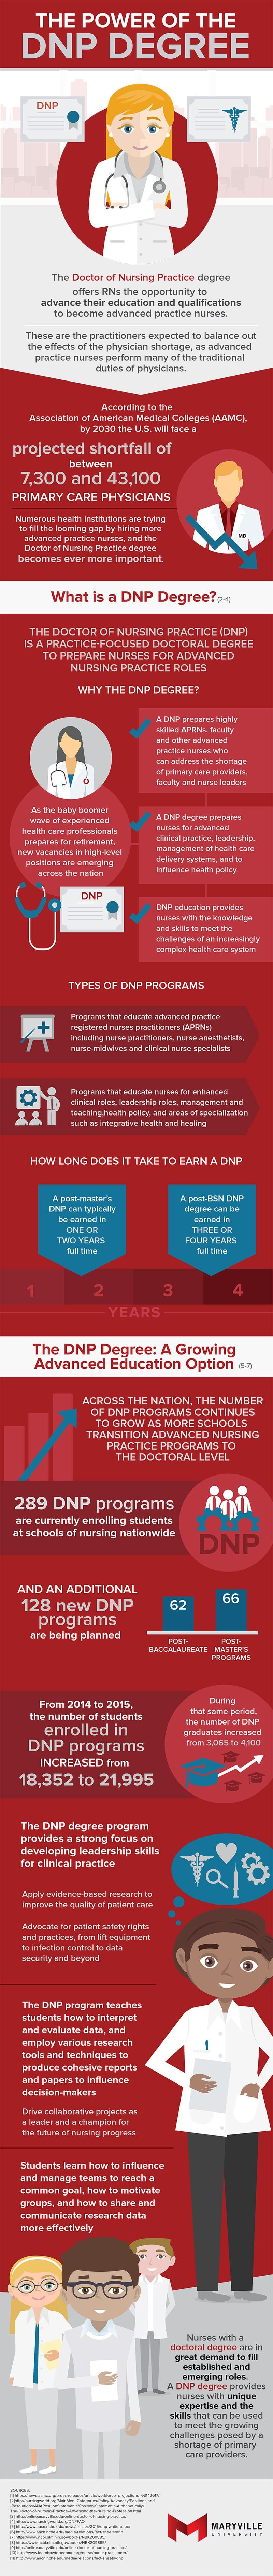 The Power of the DNP Degree #infographic